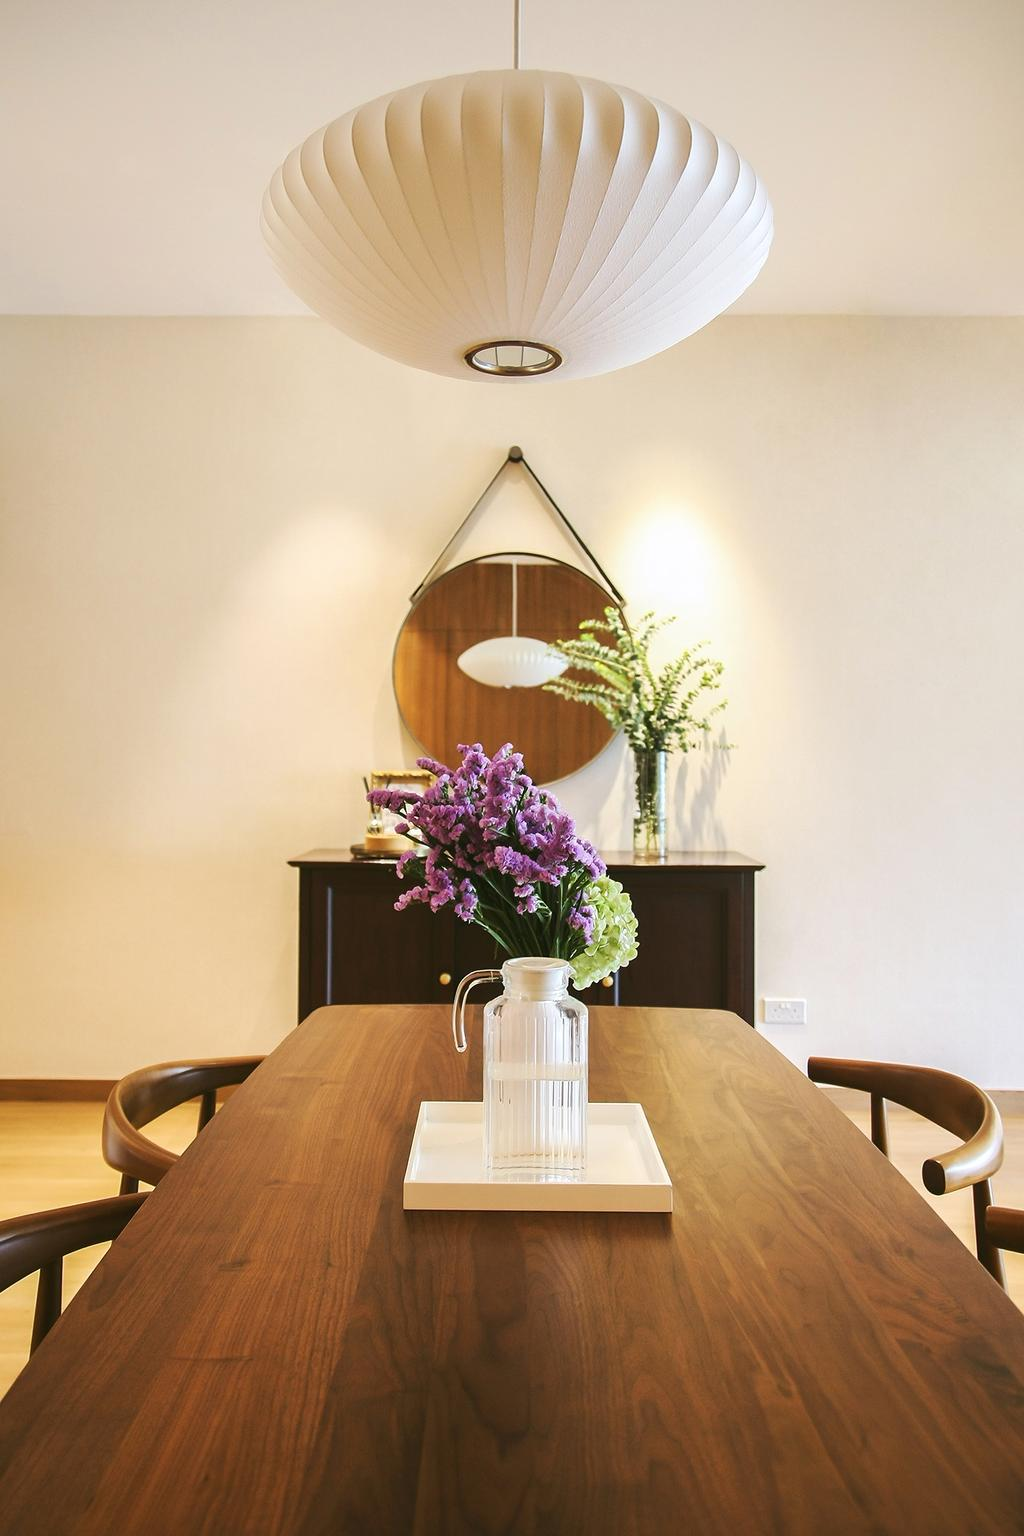 Modern, Condo, Dining Room, Tiara, Architect, JOW Architects, Lantern Lamp, Wooden Table, Wood, Oriental, Flowers, Art, Blossom, Flora, Flower, Flower Arrangement, Ikebana, Jar, Ornament, Plant, Pottery, Vase, Potted Plant, Indoors, Interior Design, Room, Dining Table, Furniture, Table, Plywood